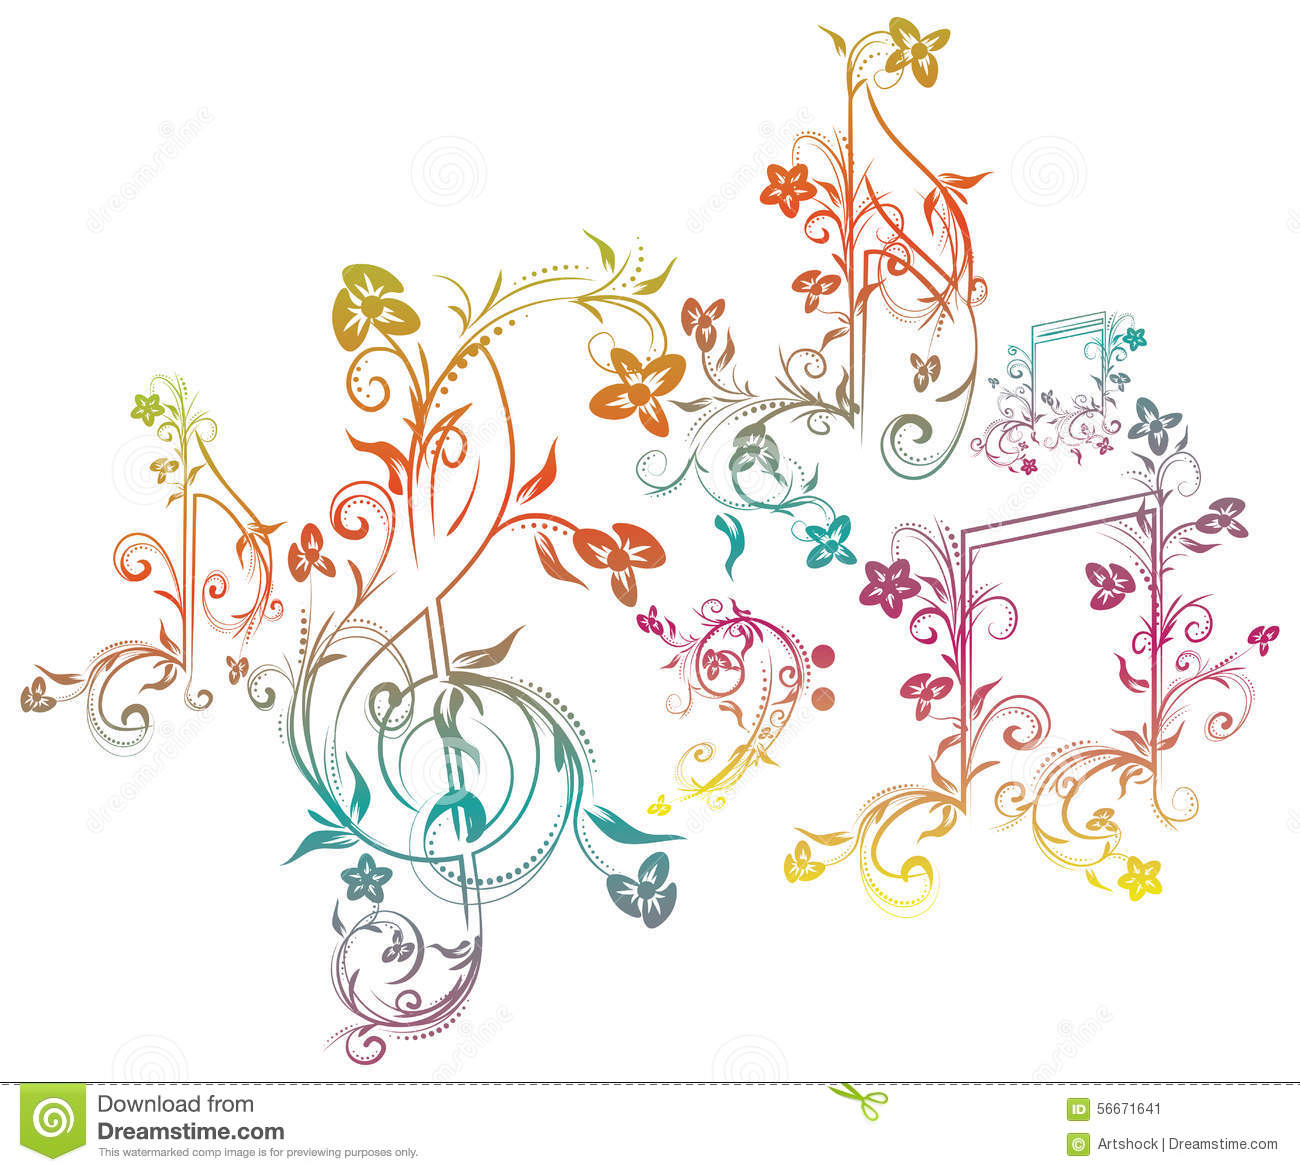 Floral Music Notes Stock Vector. Illustration Of Crotchets